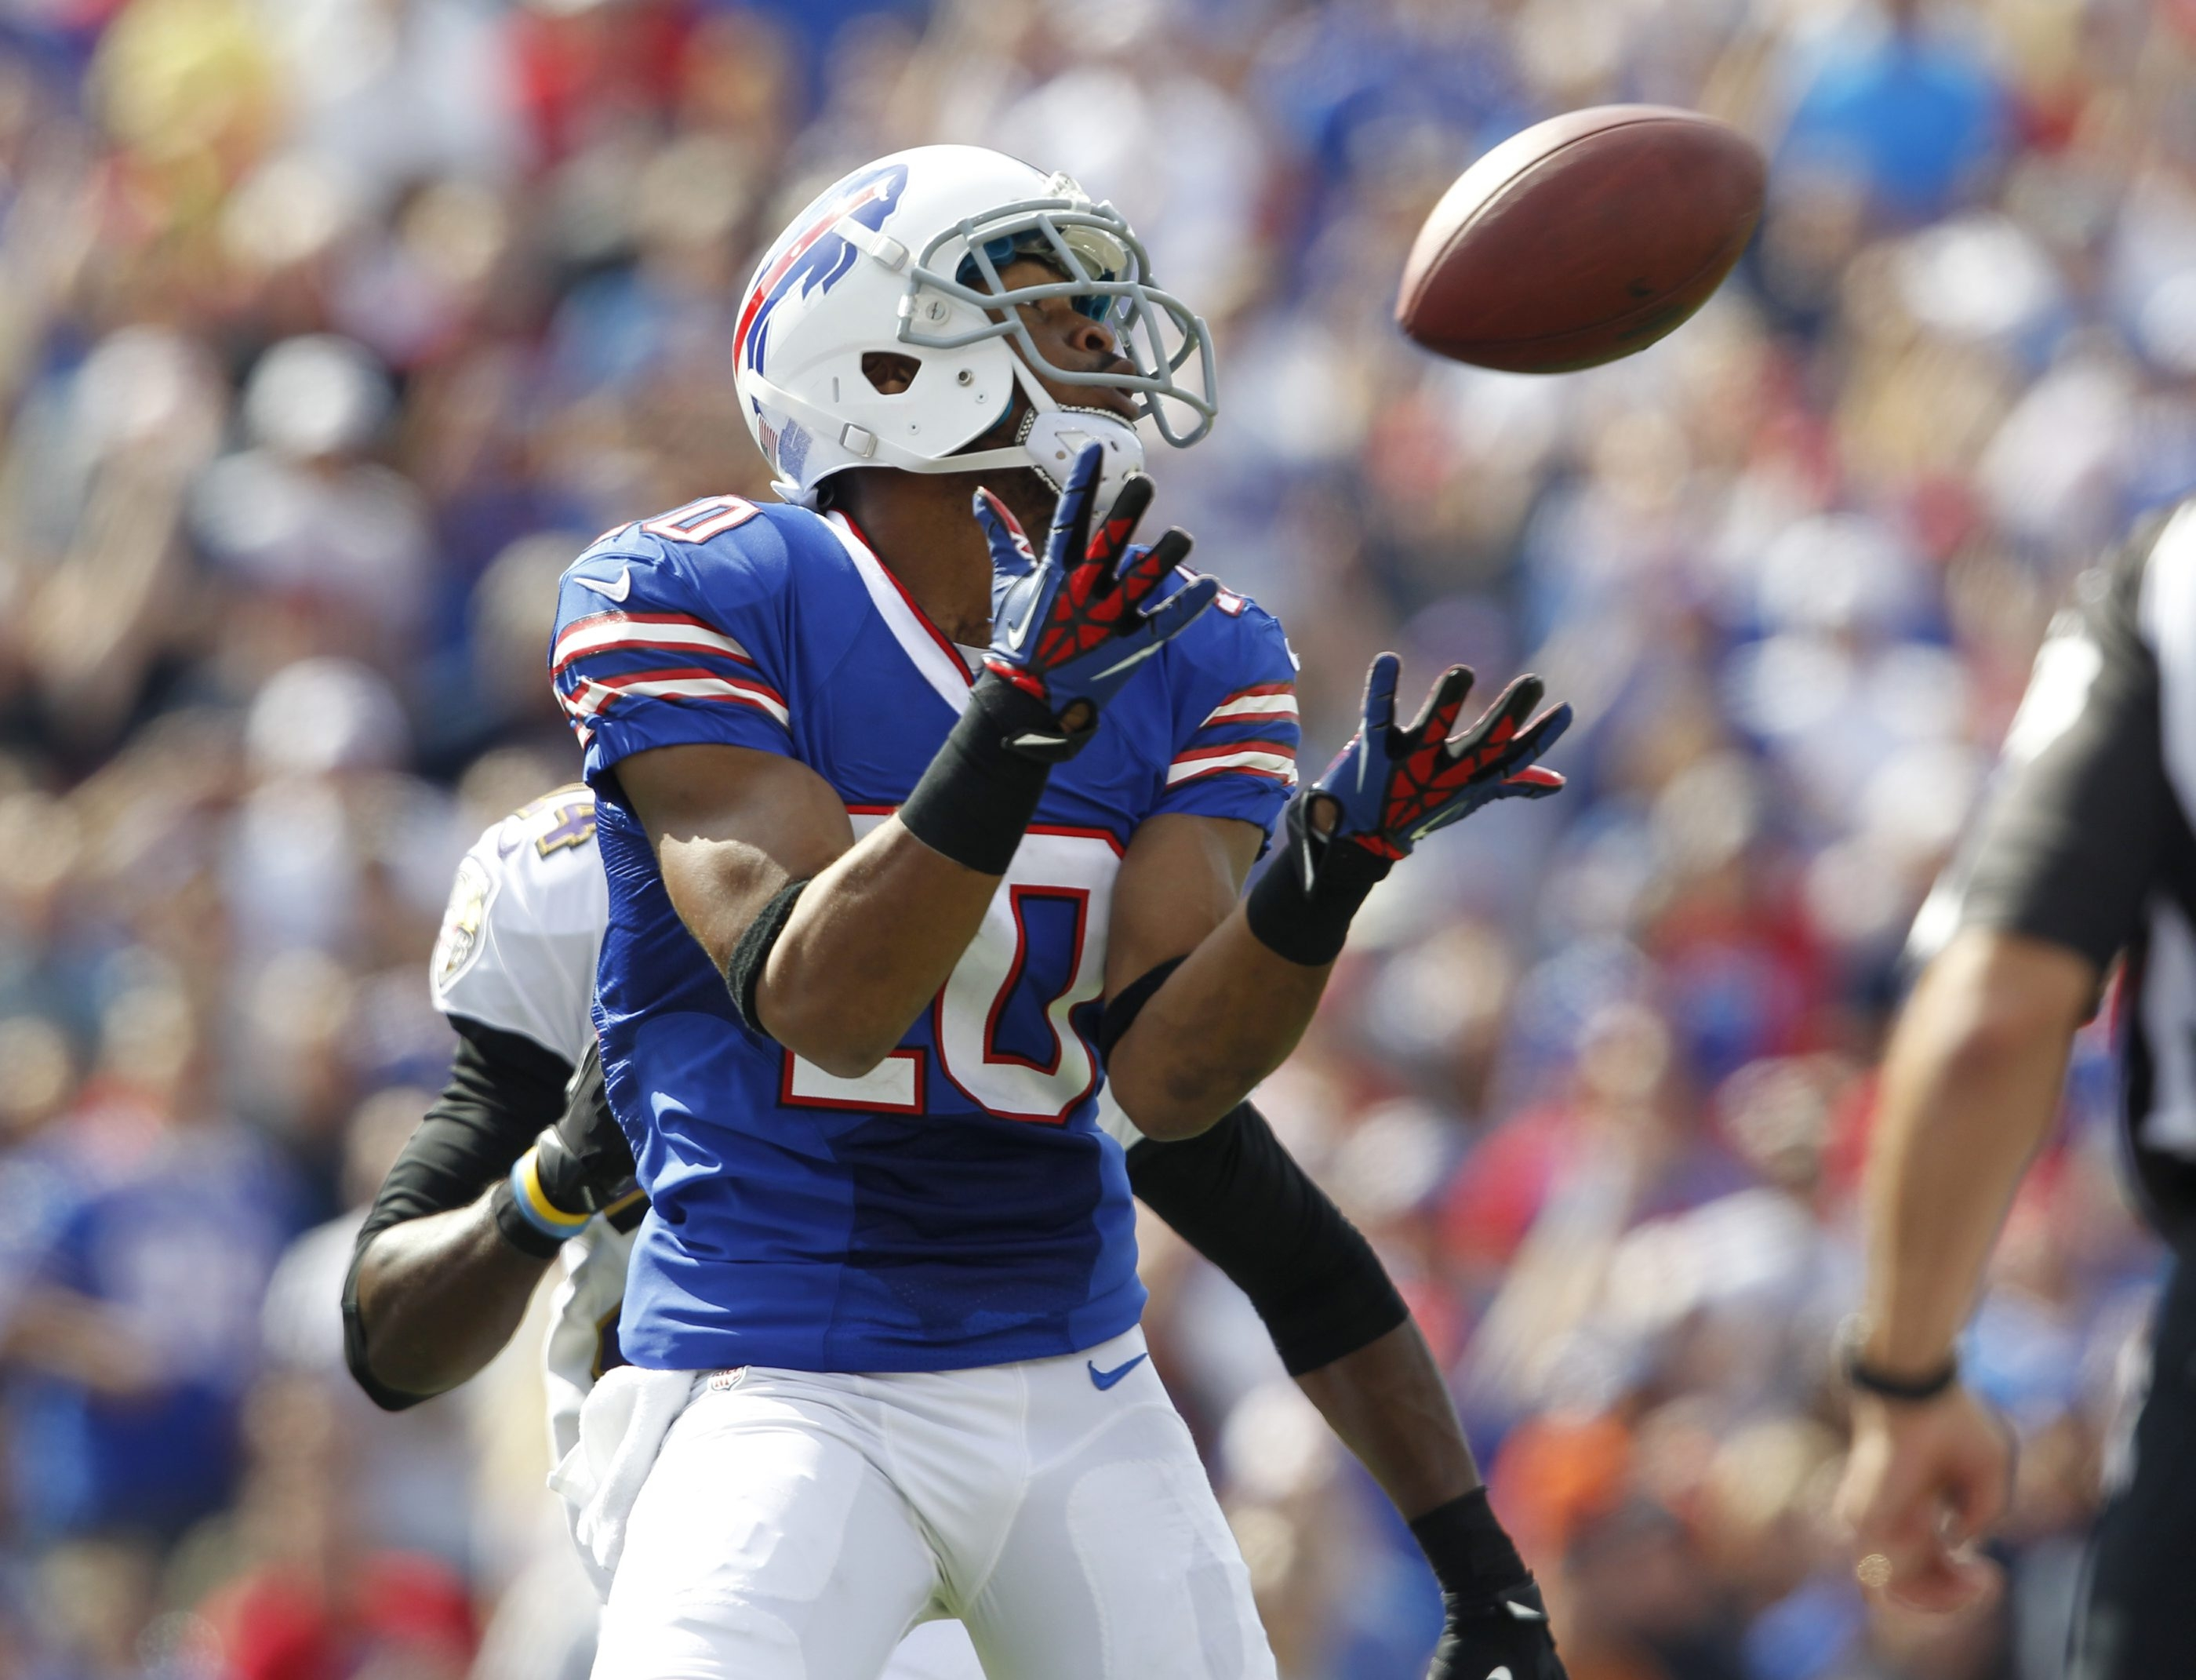 Blocking by Fred Jackson gave Buffalo Bills wide receiver Robert Woods time to catch this 42-yard TD pass in the second quarter.